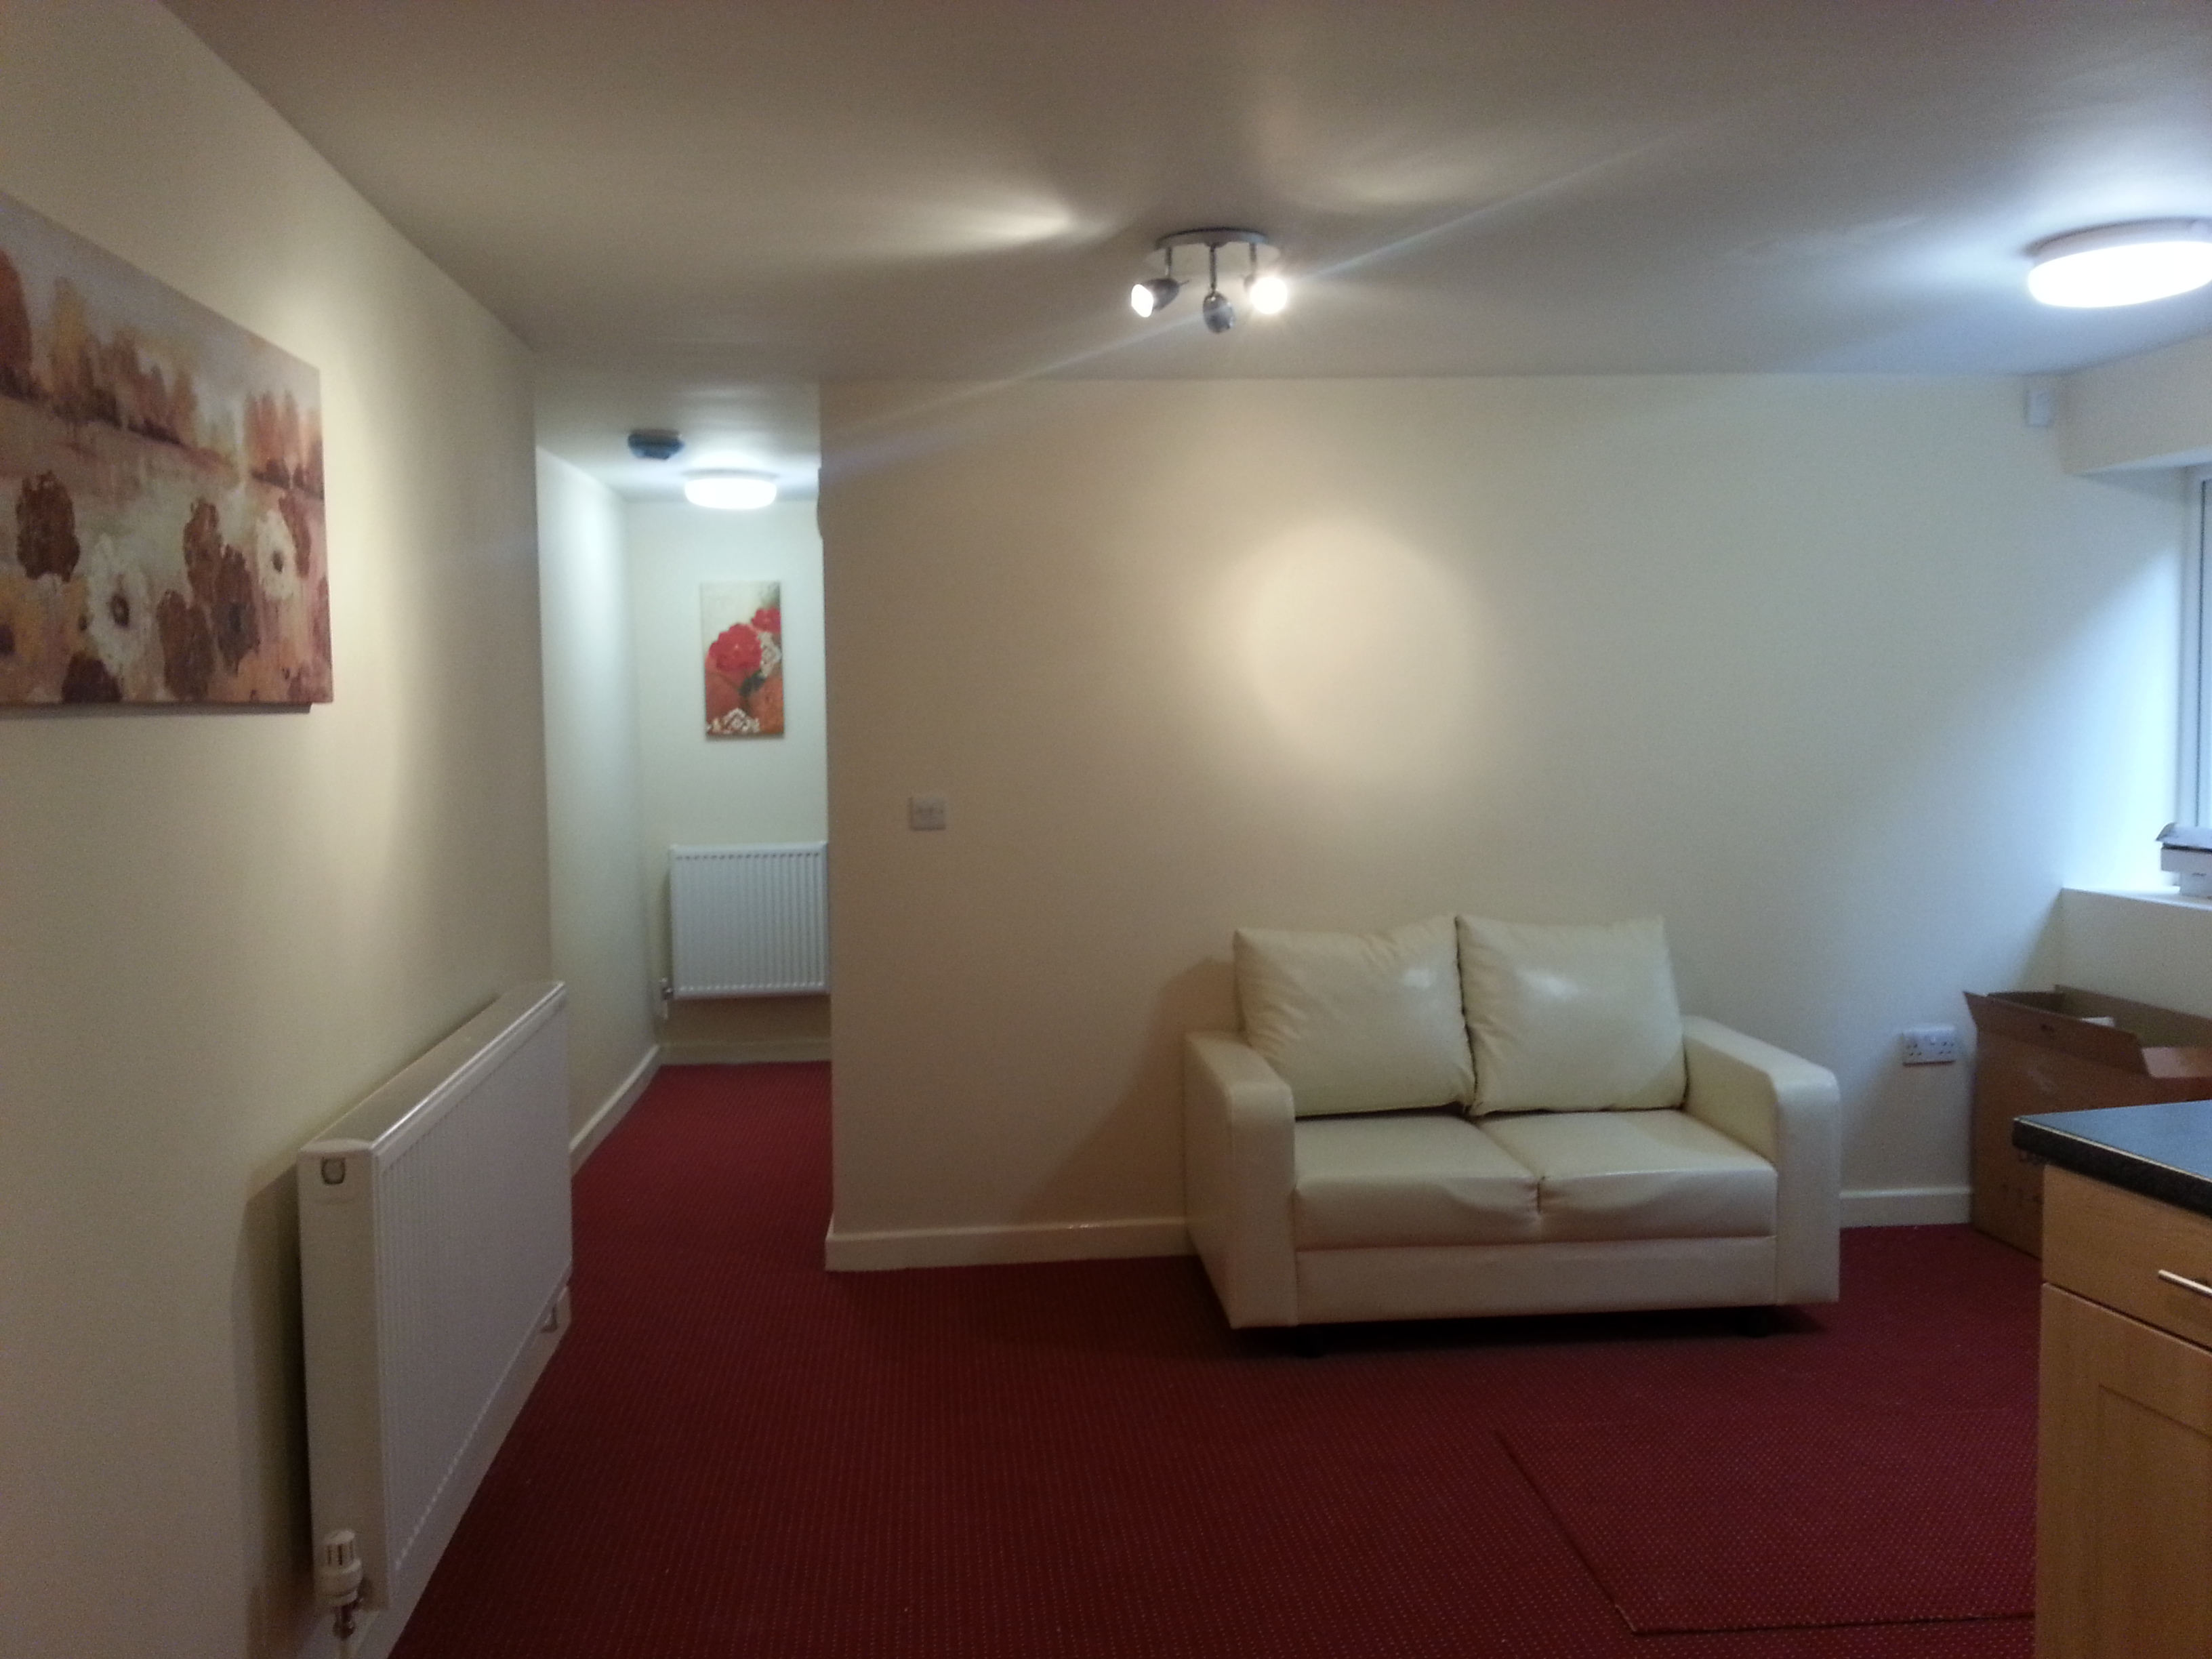 2 Bedroom Flats To Rent In Leicester 28 Images 2 Bedroom Apartment To Rent In Avenue Road